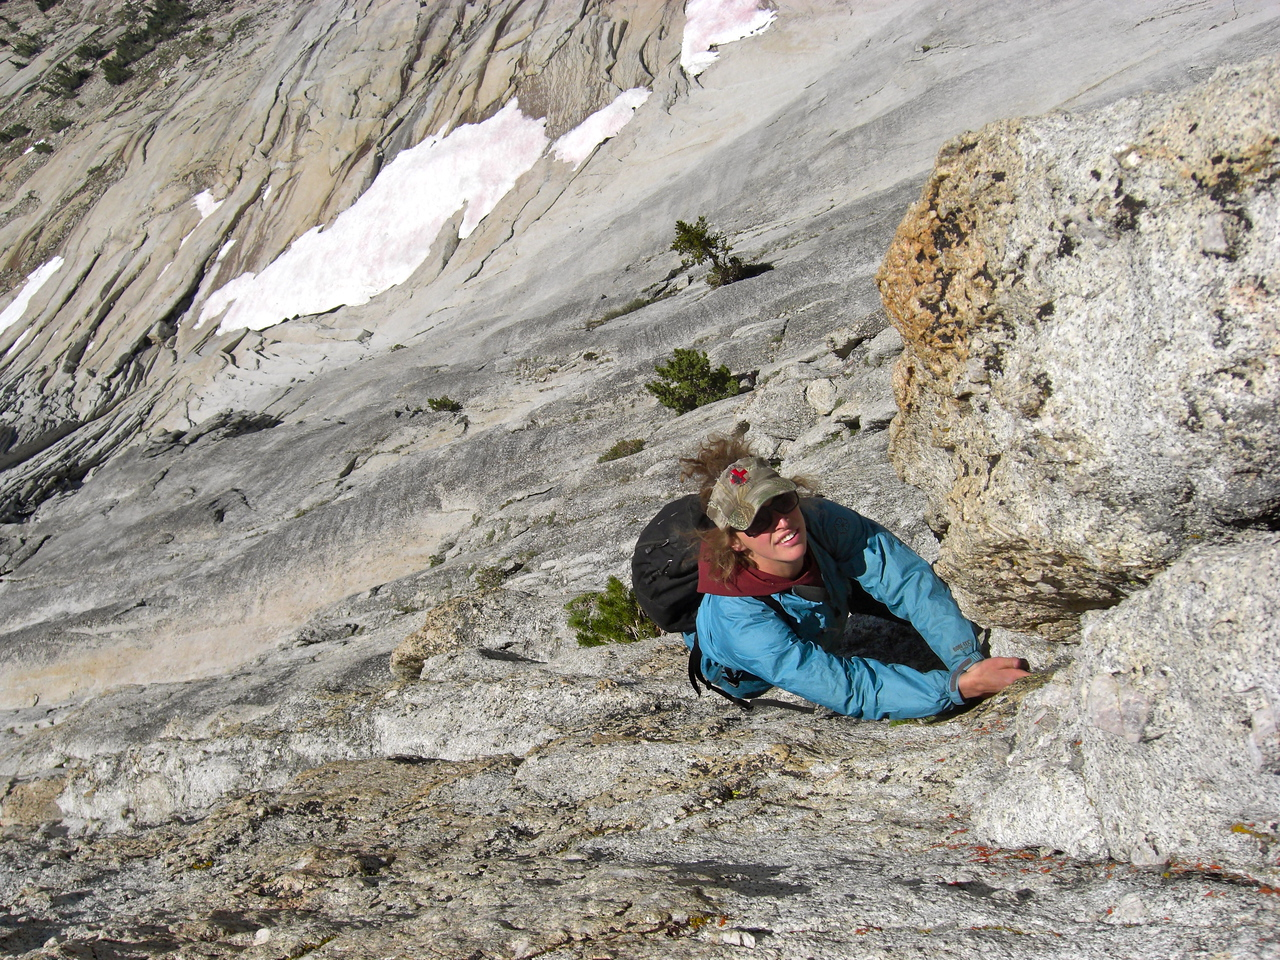 Solo on Mathes Crest (Photo by Pat Kingsbury)